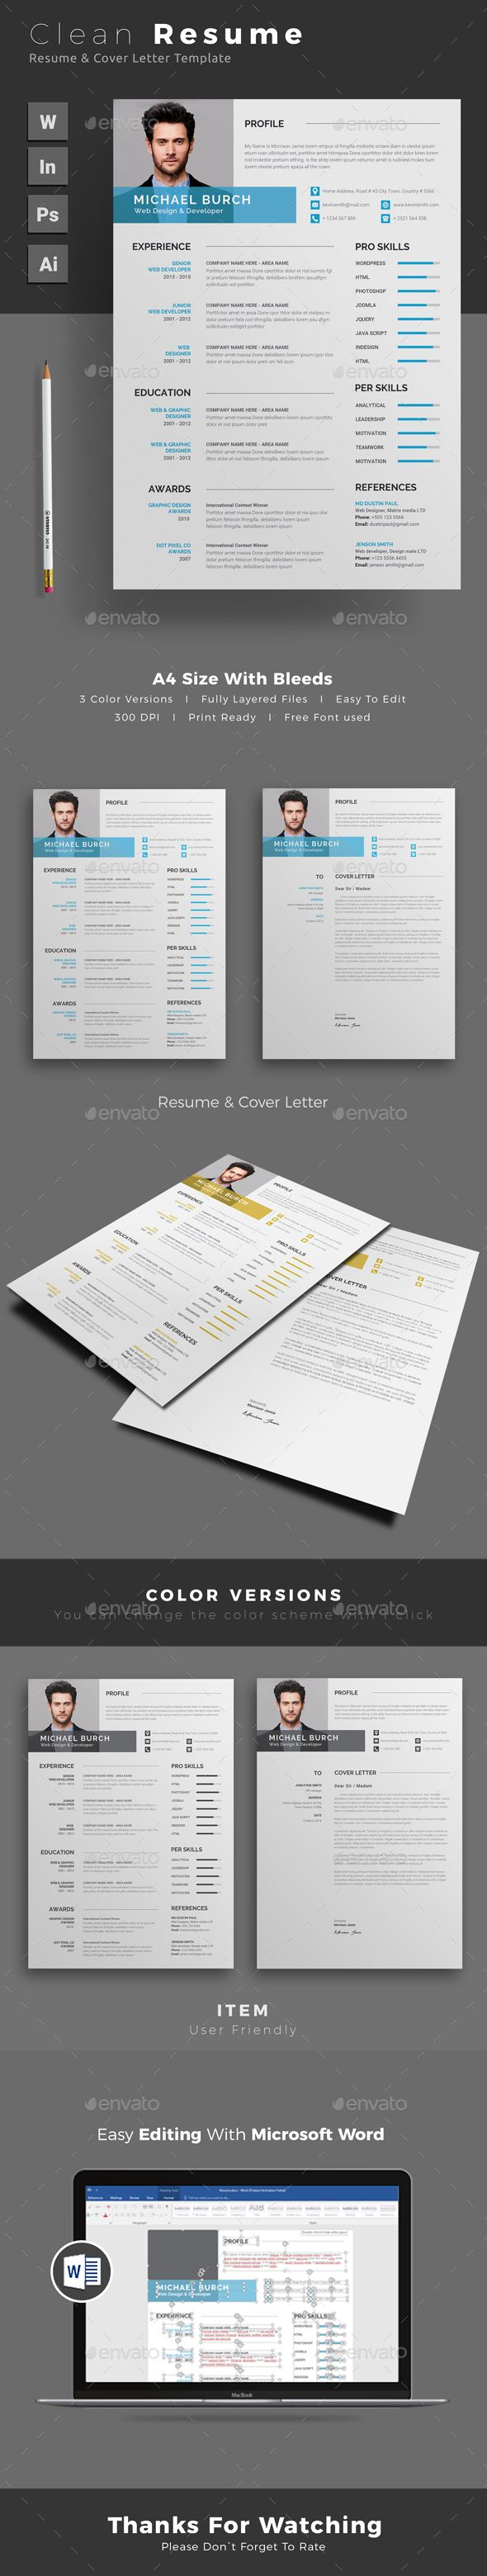 Resume By Themedevisers Word Template CV With Super Clean And Modern Look Page Designs Are Easy To Use Custom